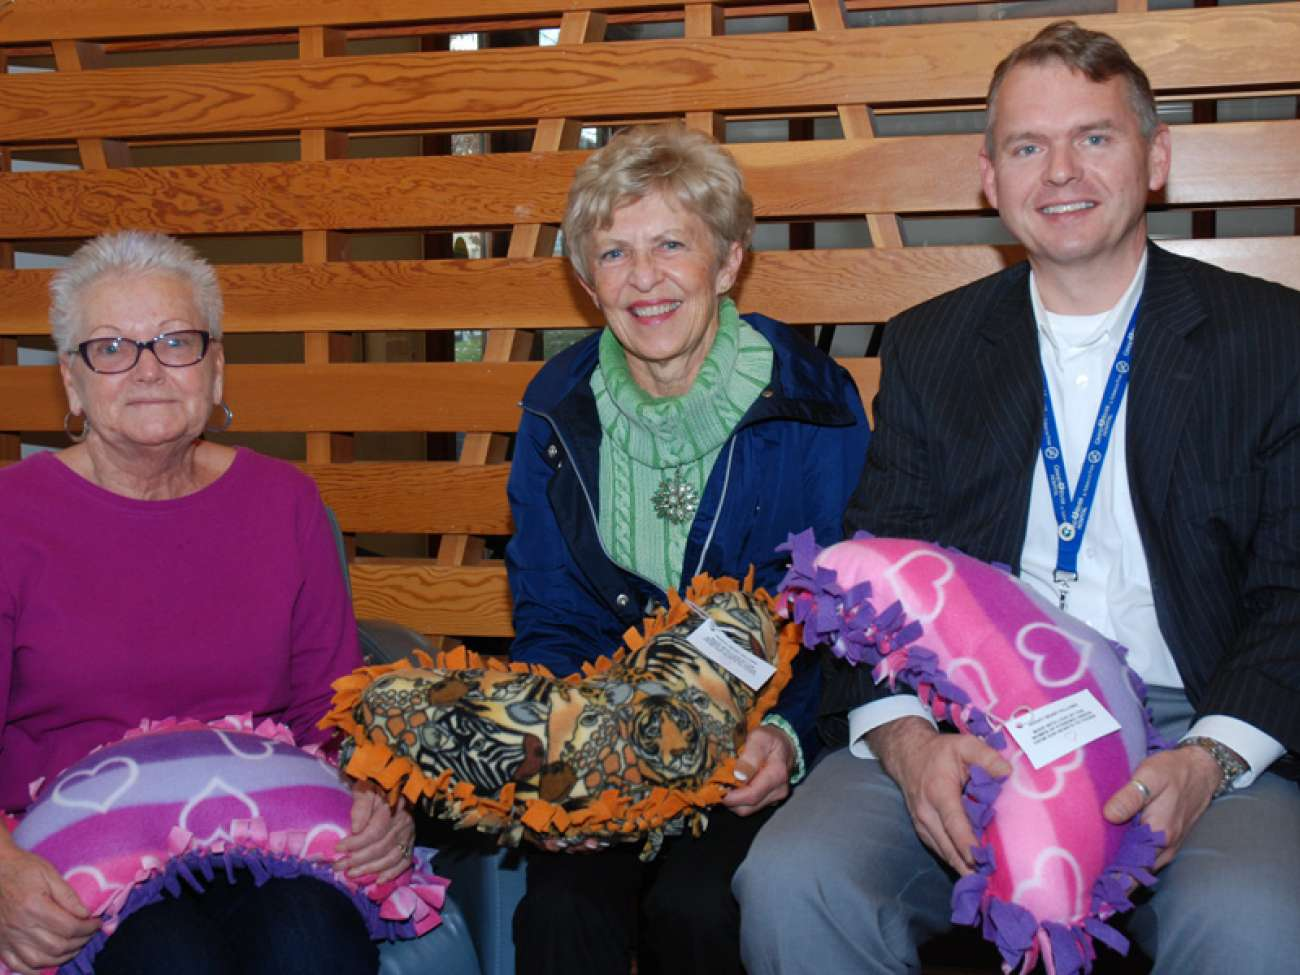 Shirley Chapman (centre) from the community of Foxboro Green drops off the latest donation of huggy pillows to patient Hildegard Anderson (left) and GRH's Owen Roszell (right)